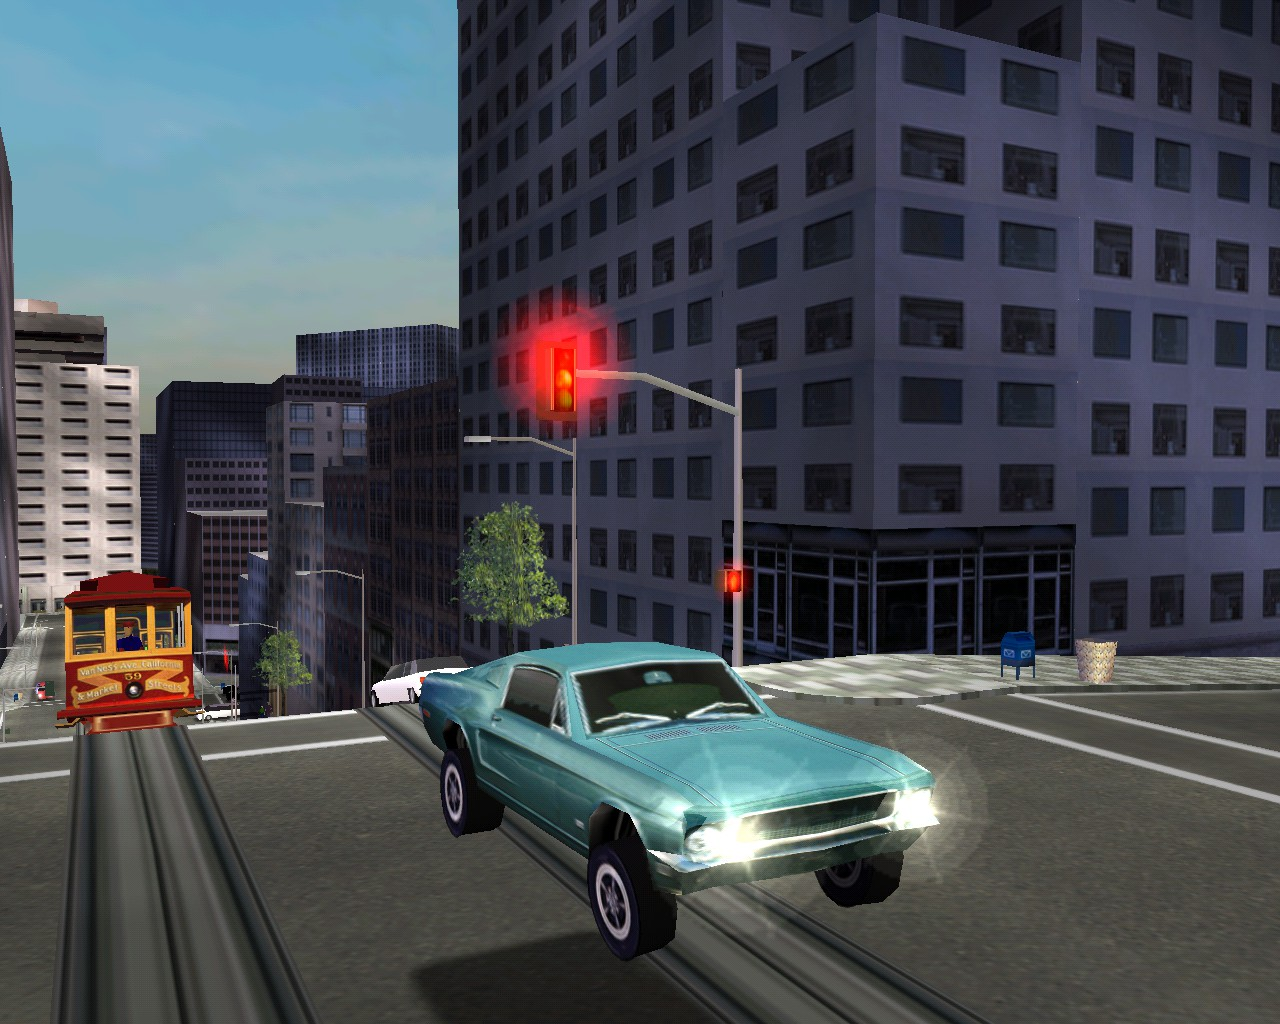 Image Ford Mustang Fastback Jpg Midtown Madness 2 Wiki